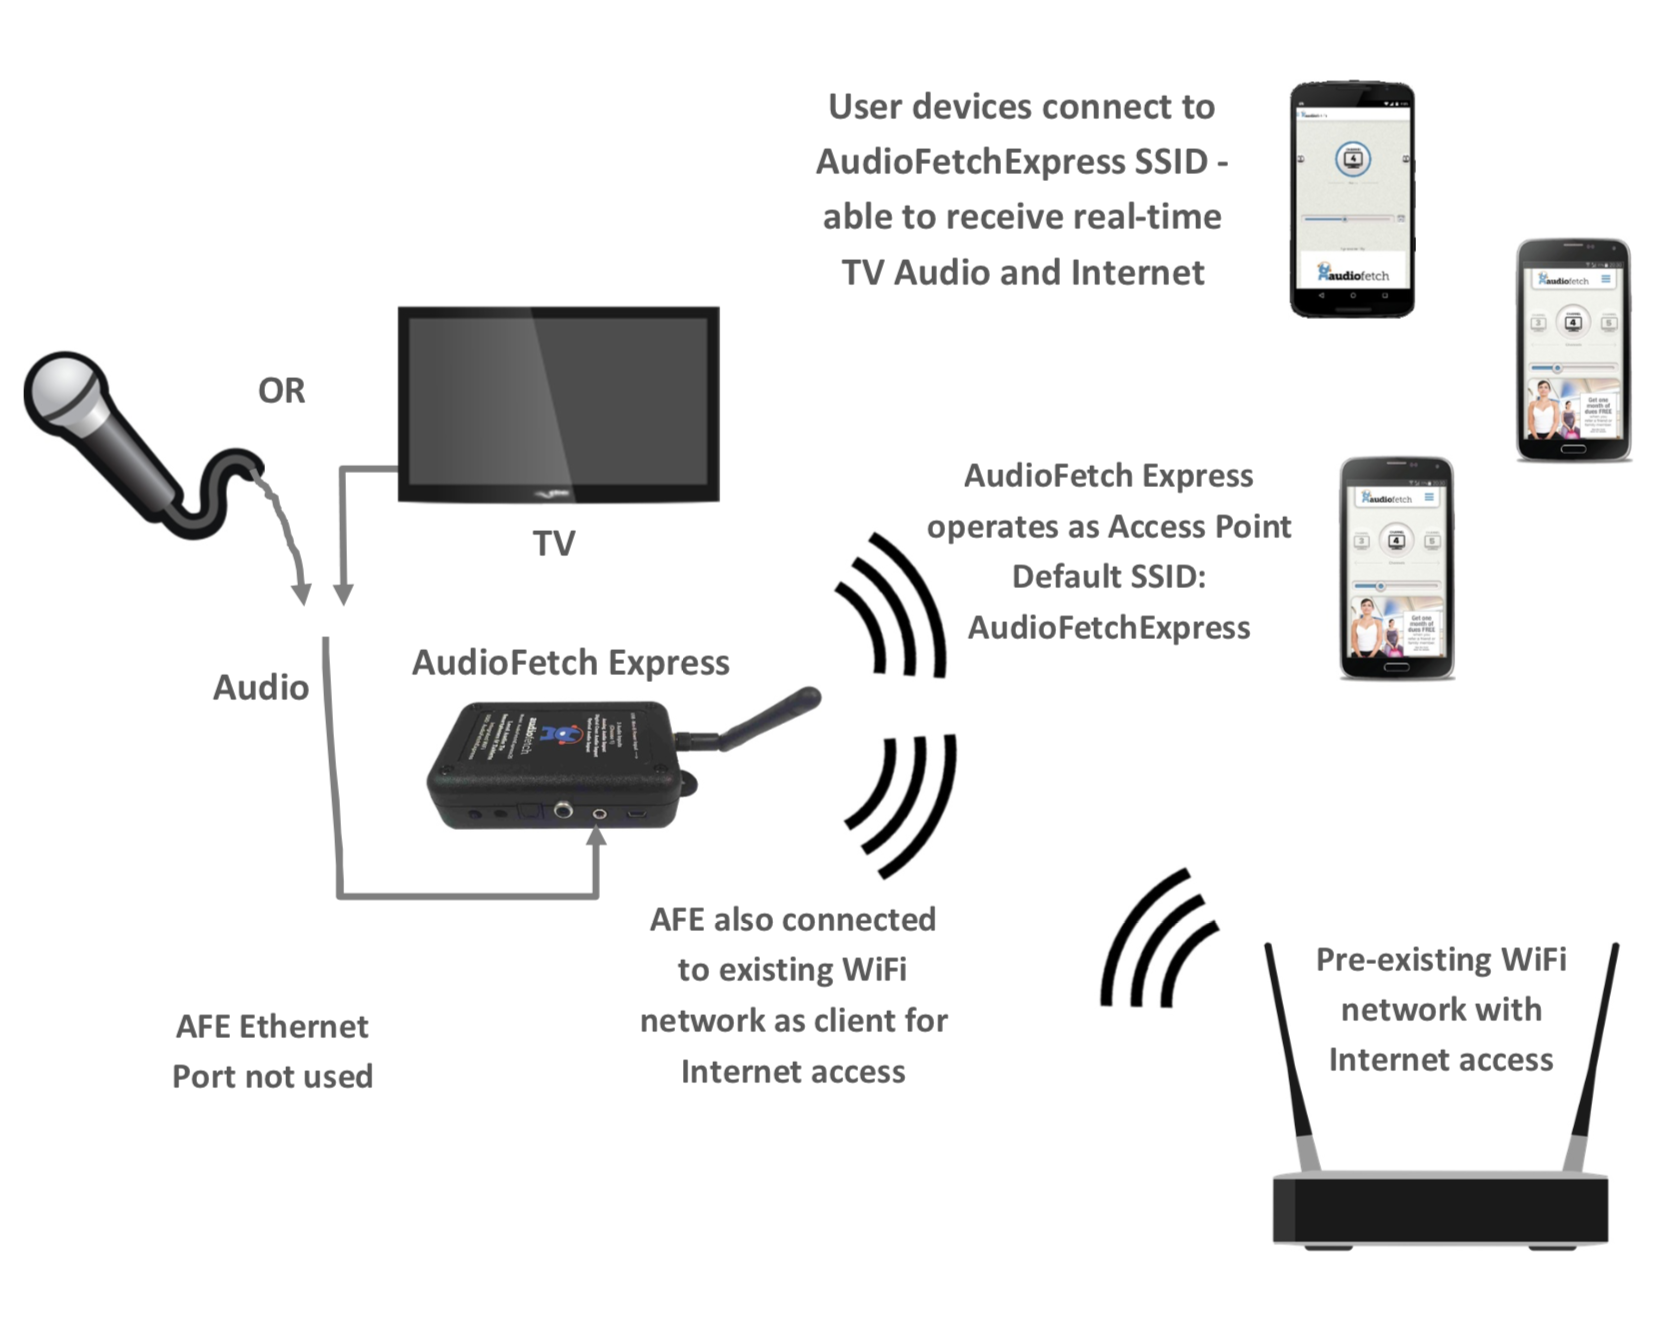 AudioFetch Express - Networking Mode - Access Point with Wireless Internet